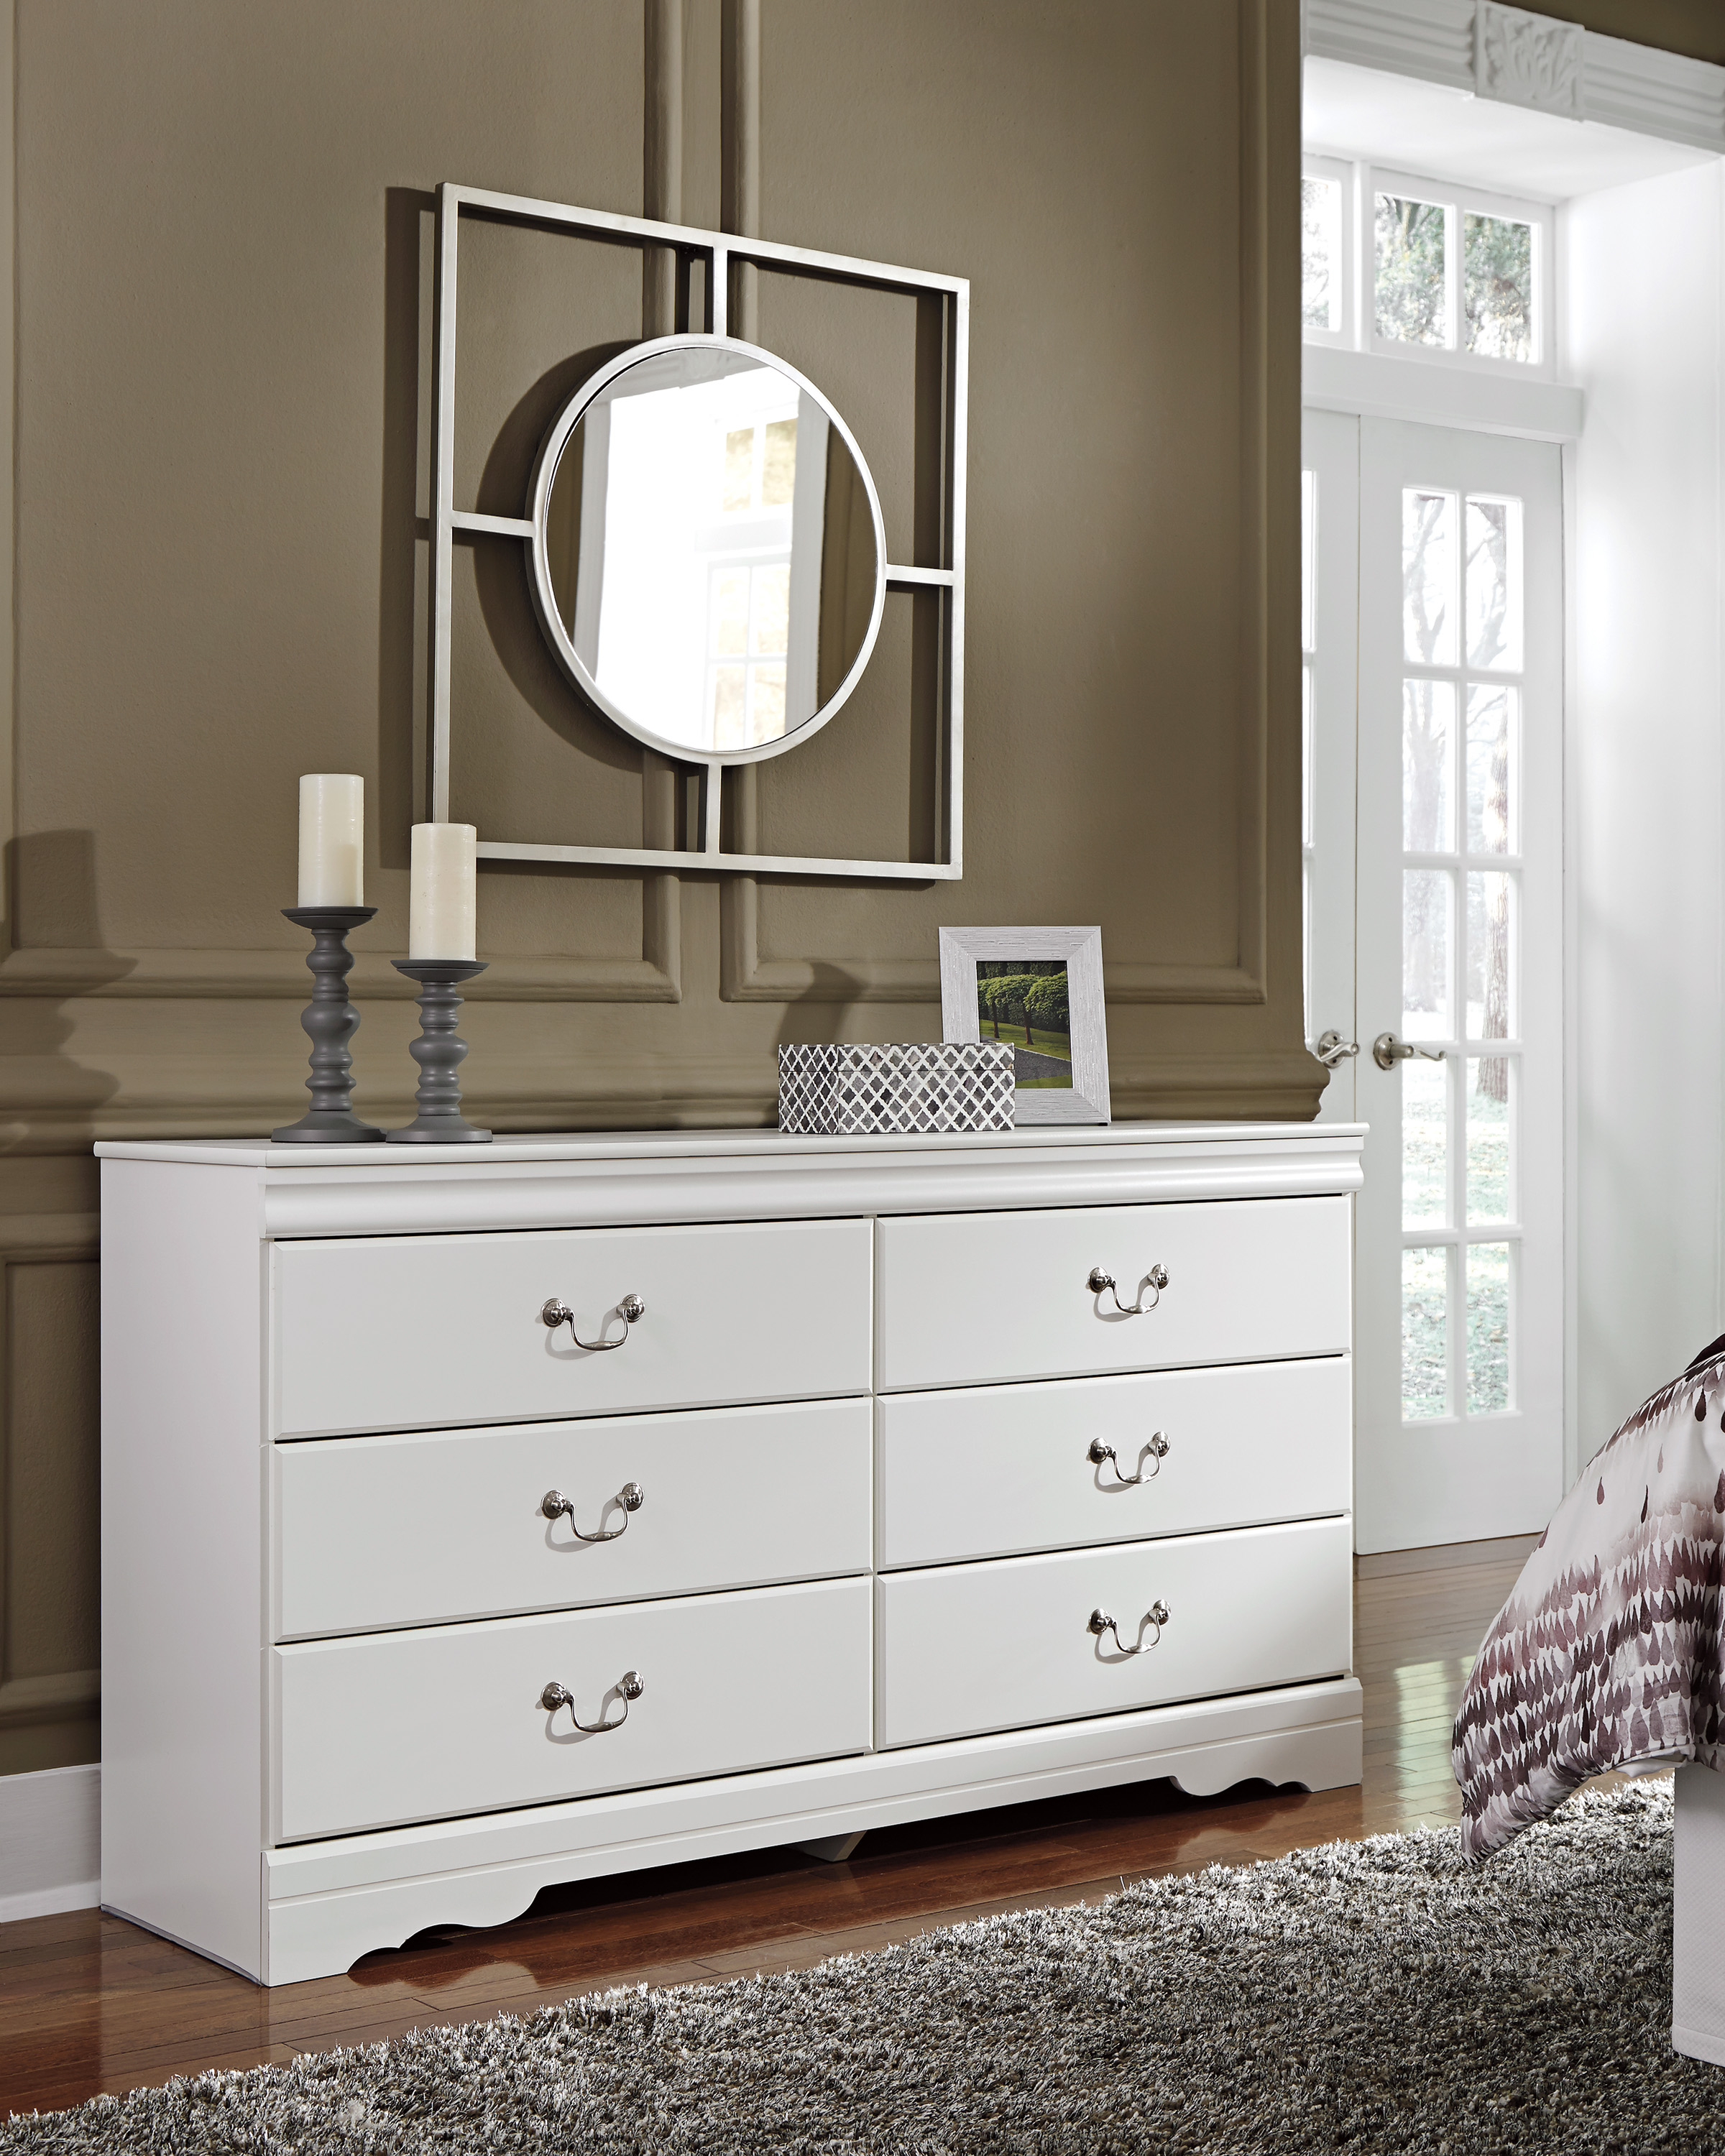 Bittersweet, B219-31, Dressers by Midha Furniture to Brampton, Mississauga, Etobicoke, Toronto, Scraborough, Caledon, Oakville, Markham, Ajax, Pickering, Oshawa, Richmondhill, Kitchener, Hamilton and GTA area